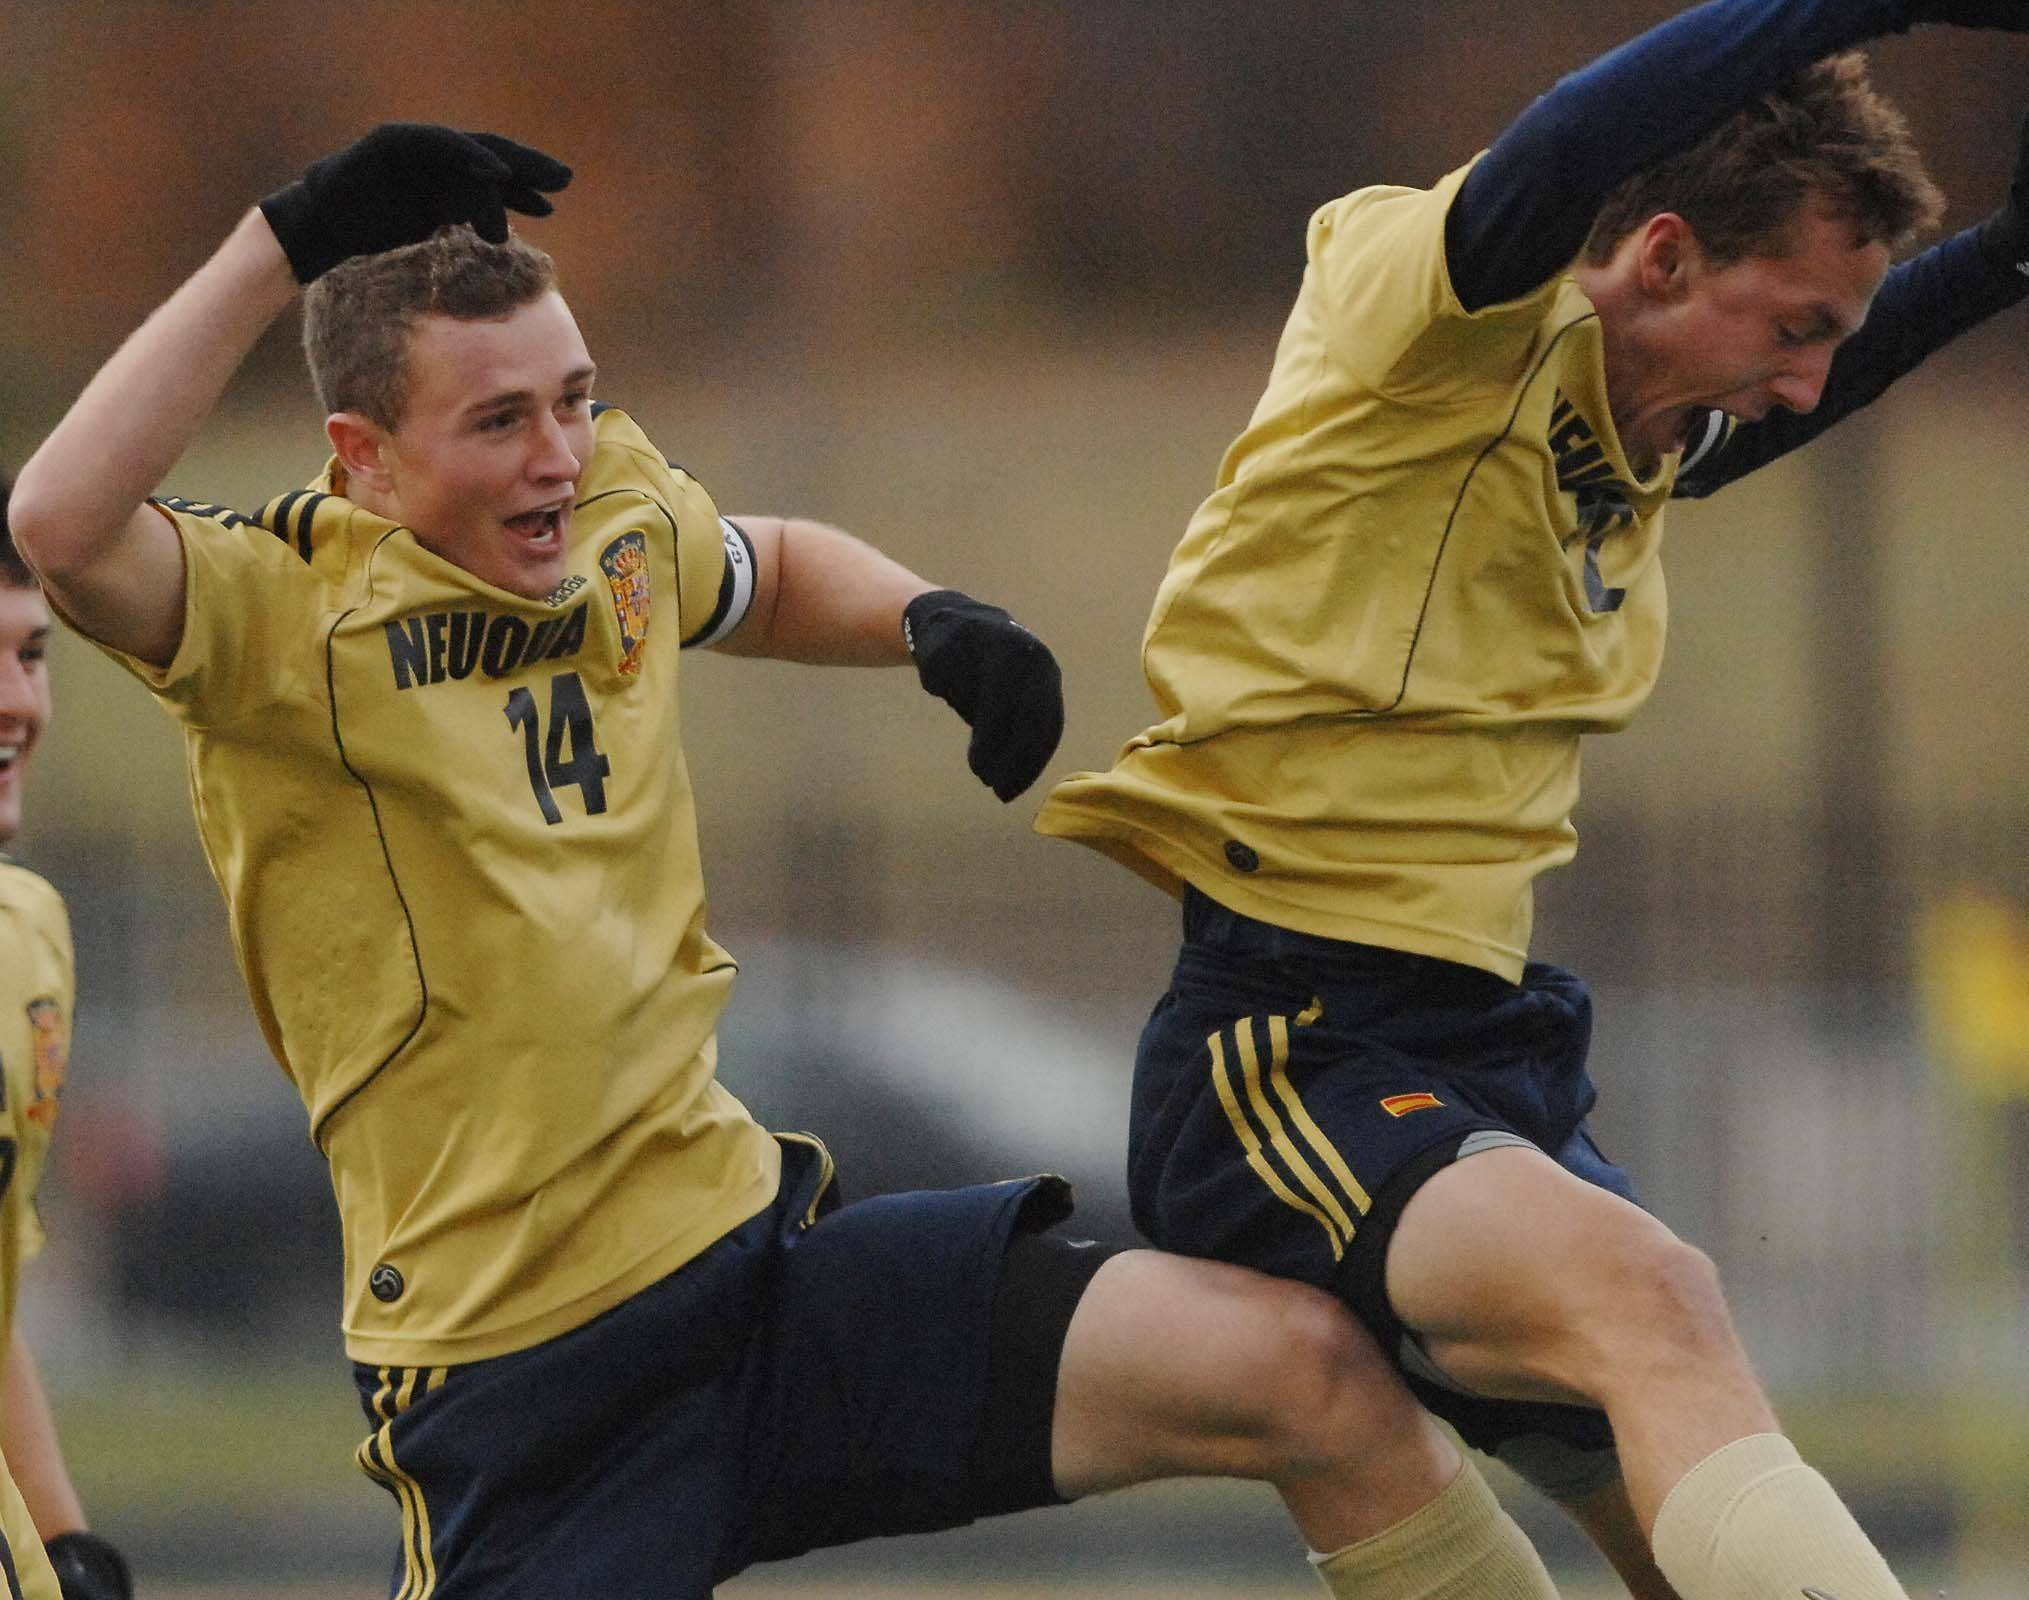 Jacob Brindle, left, and Pat Doody of Neuqua Valley celebrate after a first-half goal against East Aurora Thursday.